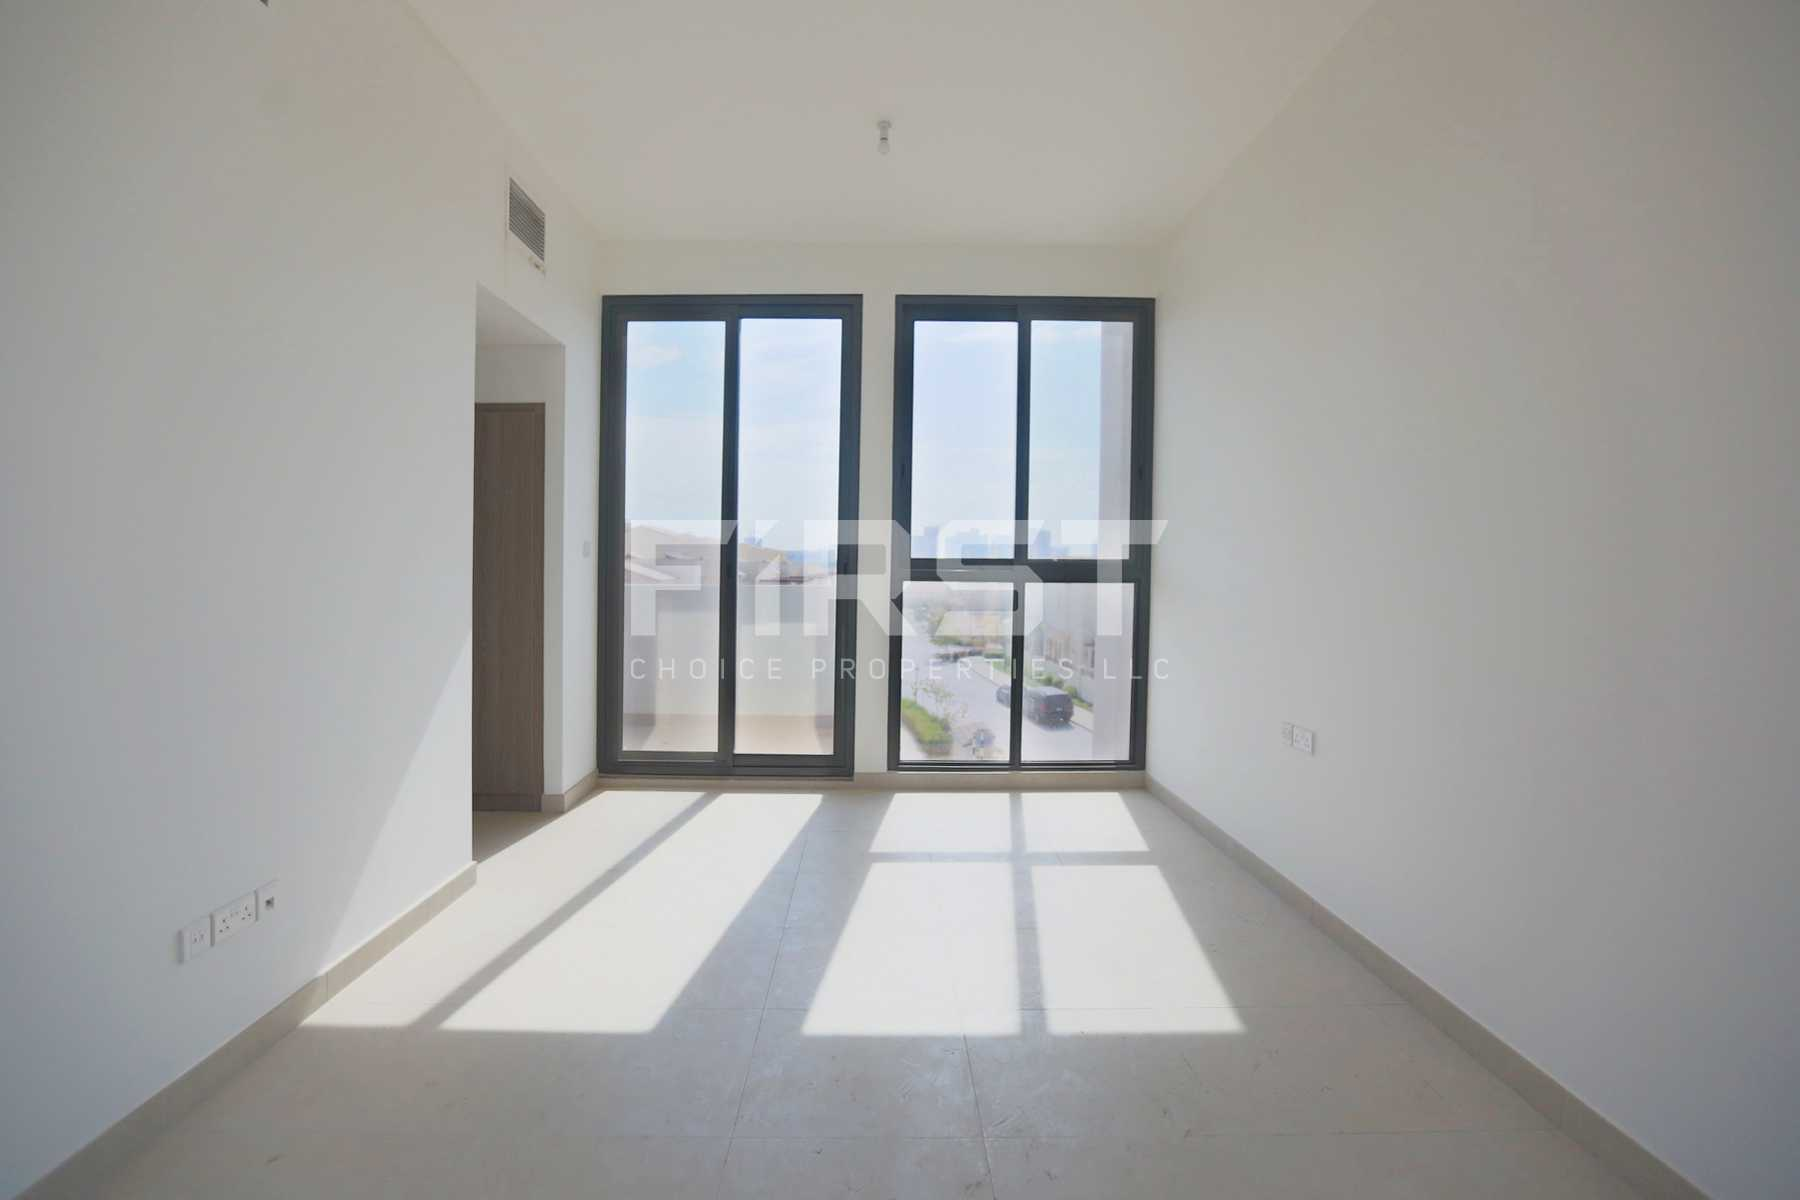 Internal Photo of 5 Bedroom Villa in Faya at Bloom Gardens Al Salam Street Abu Dhabi UAE (36).jpg